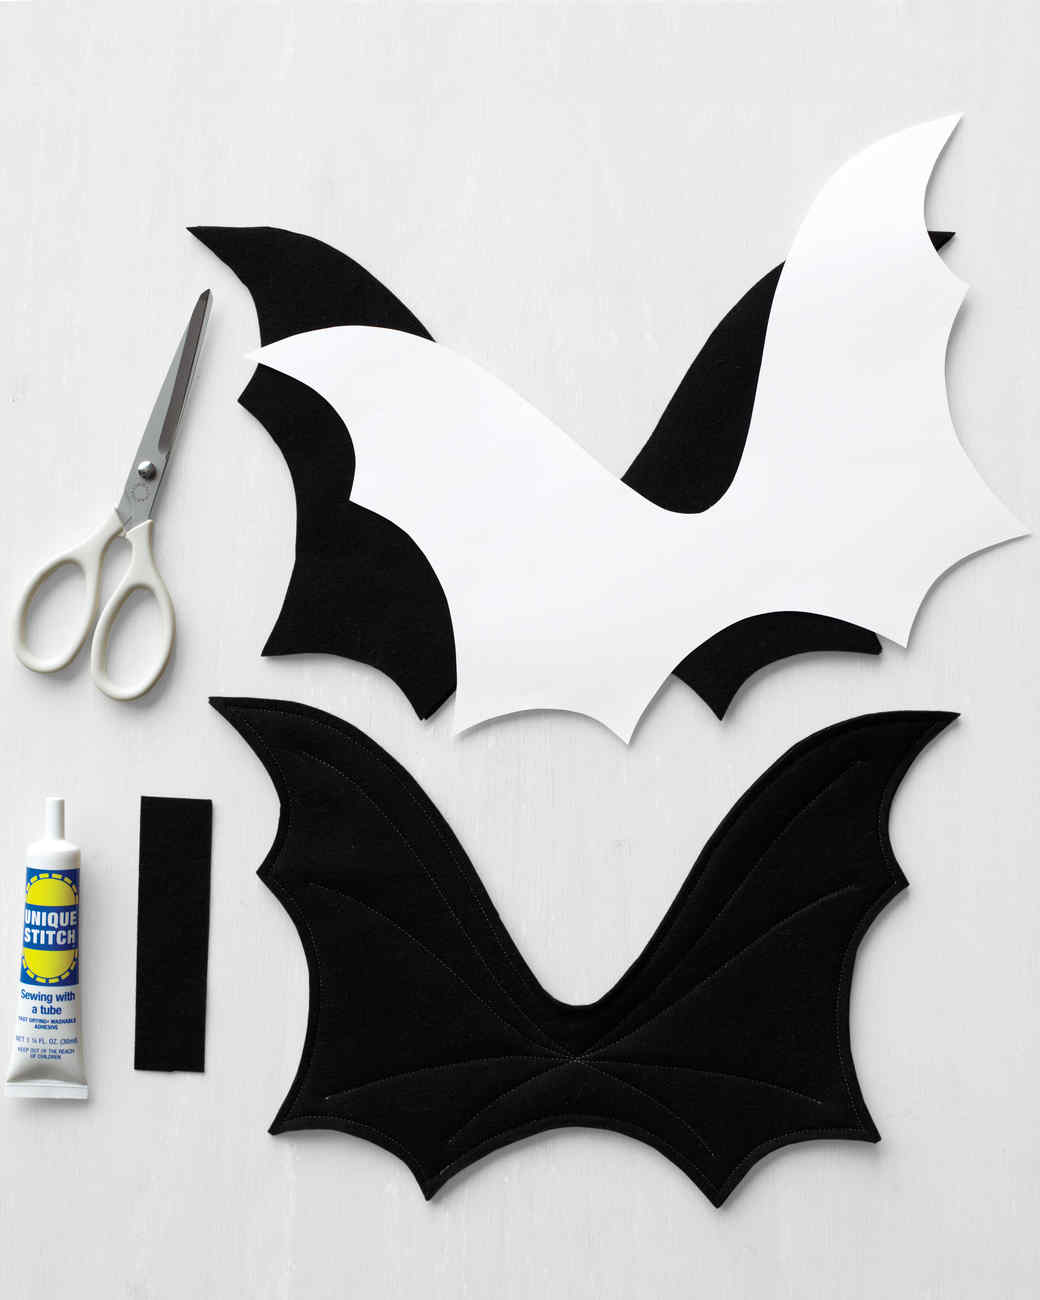 Extra felt layers help the wings stay upright. A rectangle of felt fastens the wings to a harness. & Bat Wings Harness Costume | Martha Stewart